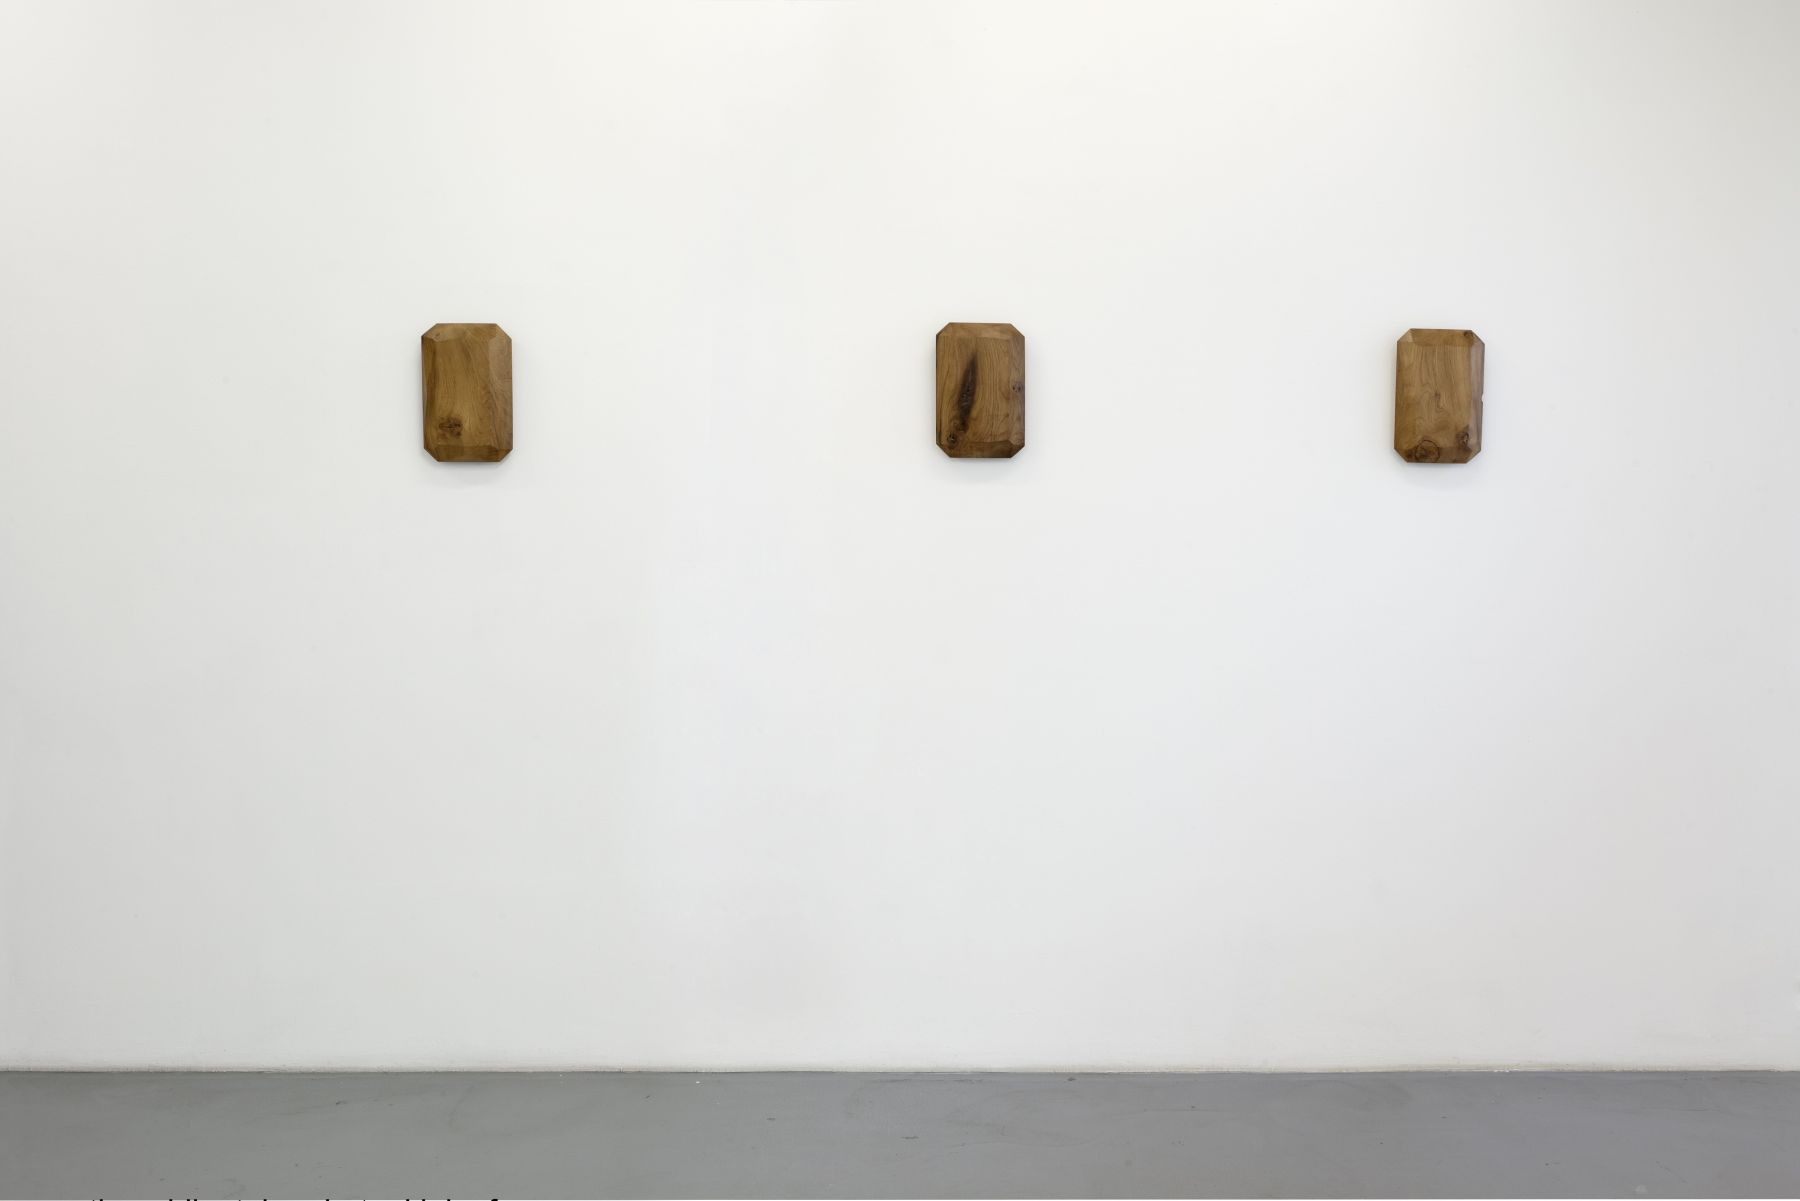 Lucy Skaer: Blanks and Ballast– installation view 5